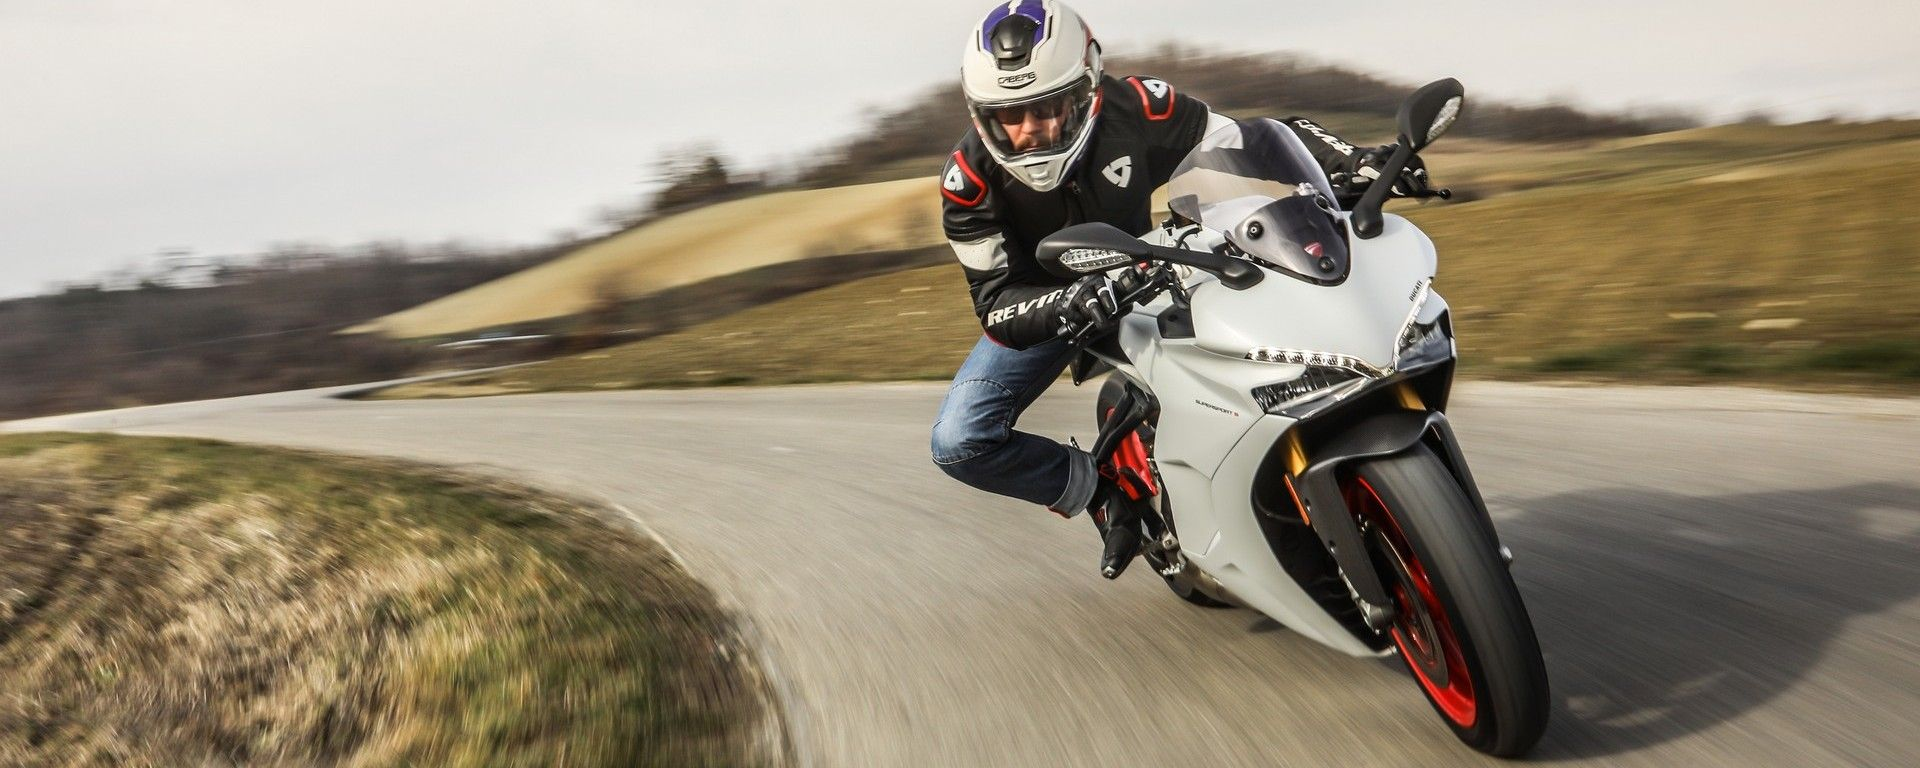 Ducati Supersport S: il test